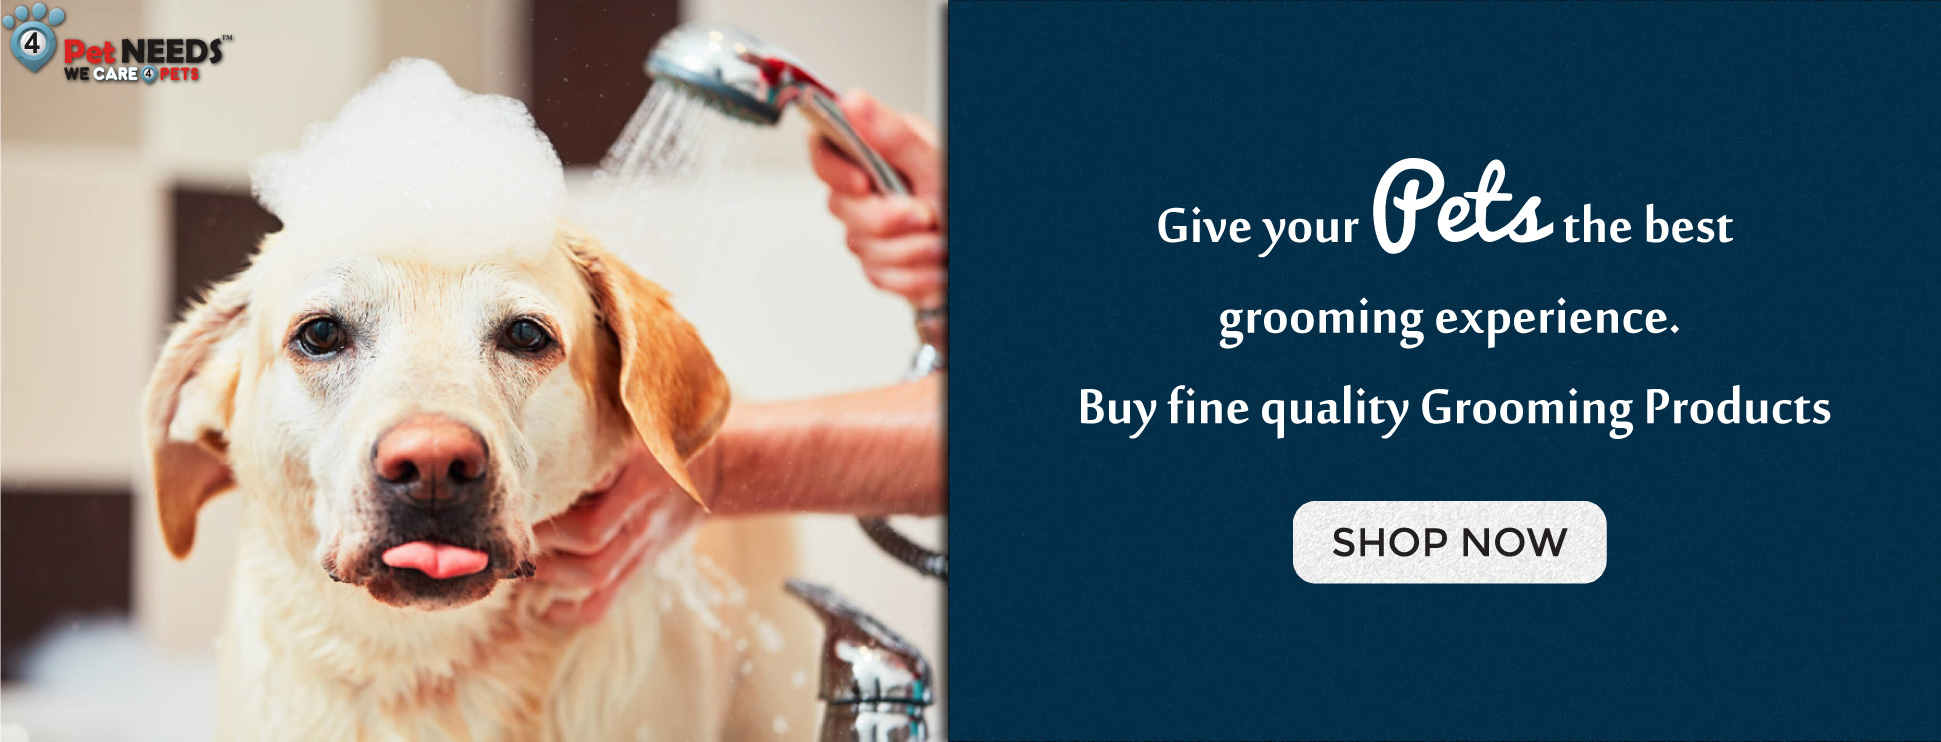 Grooming-Banner-main-website3.jpg